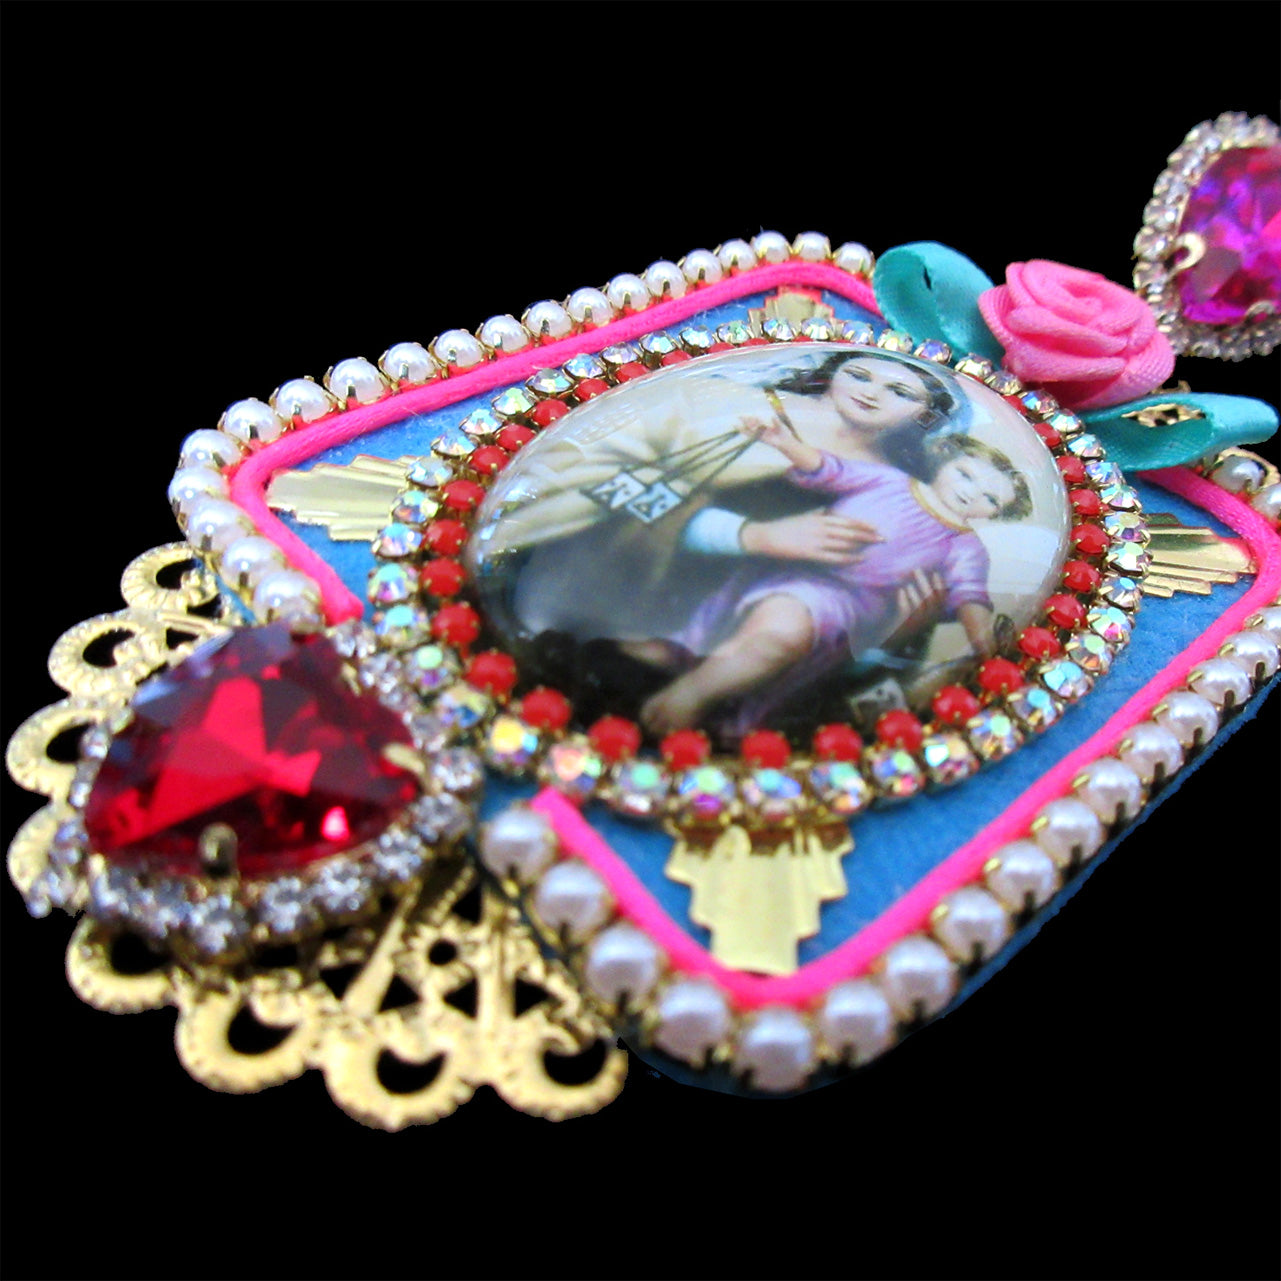 mouchkine jewelry handmade in france luxury chic and kitsch couture earrings.